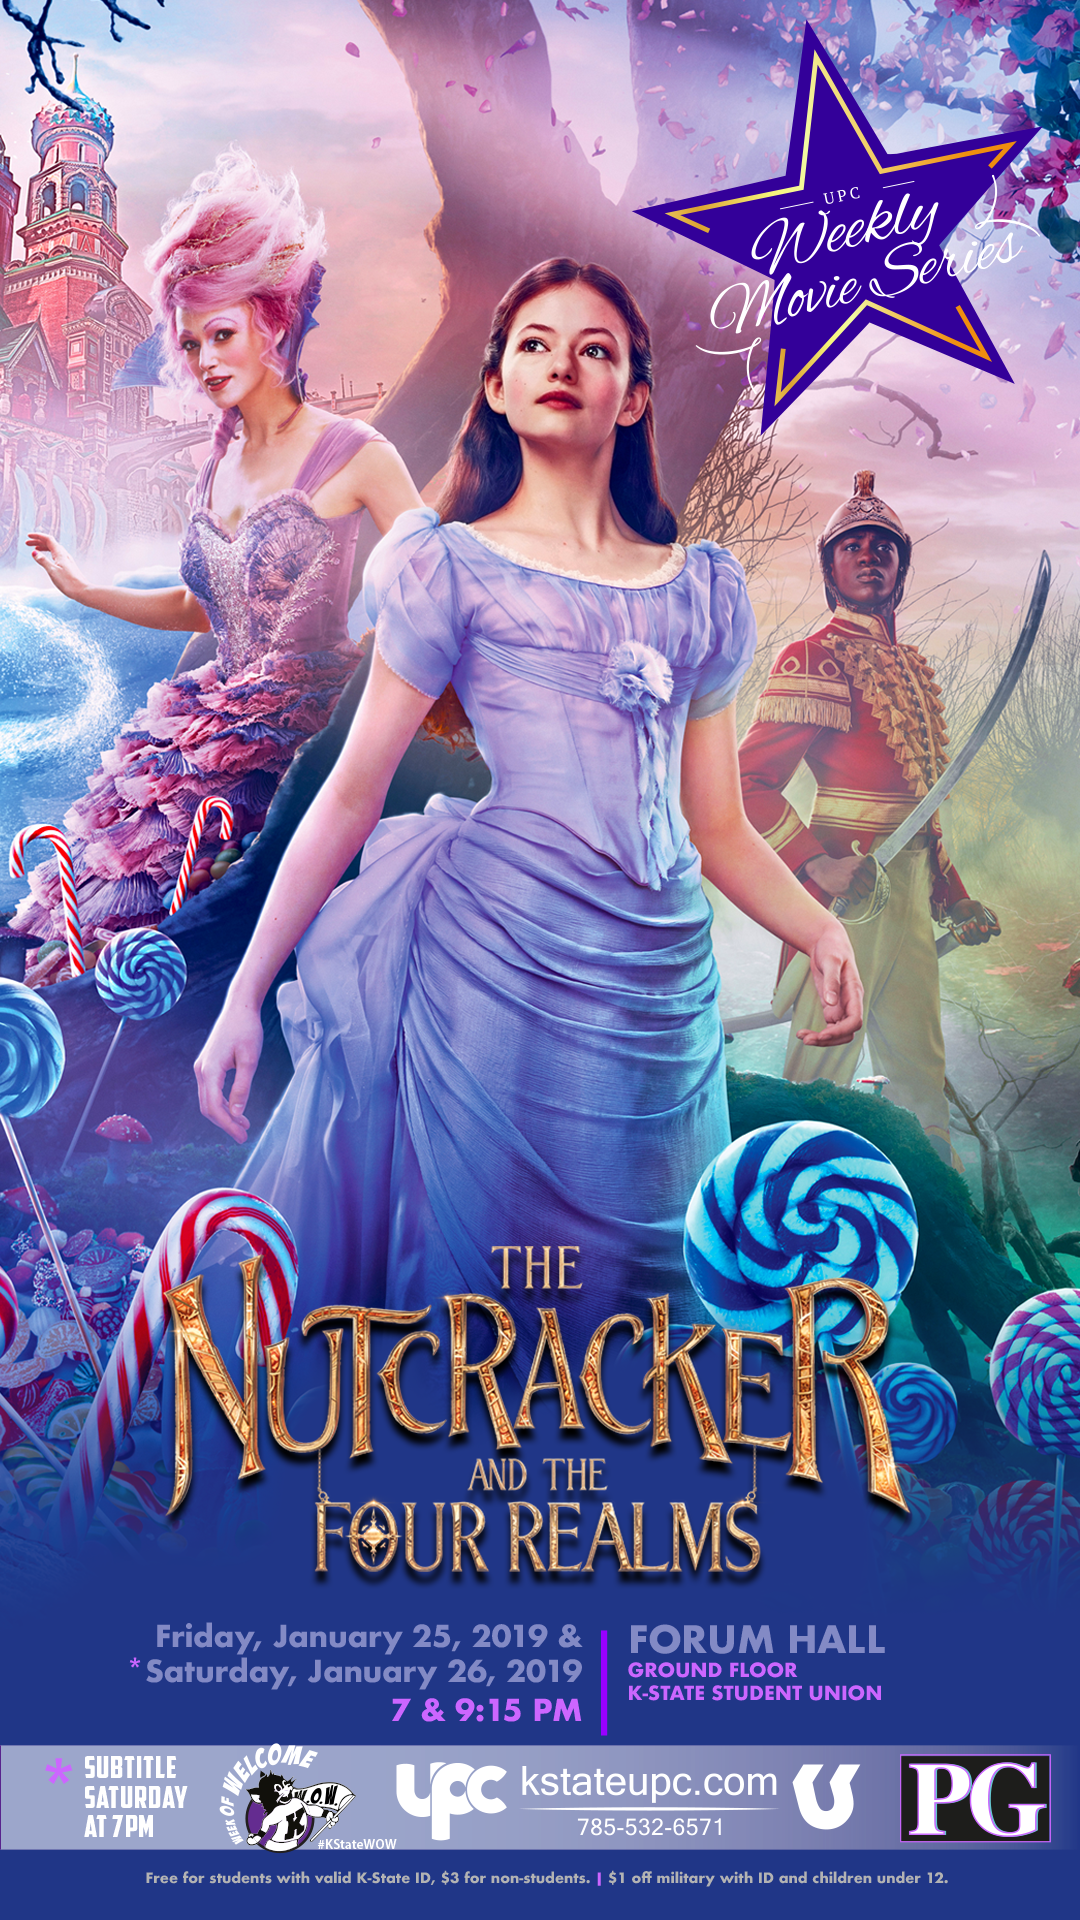 Film: The Nutcracker and the Four Realms (PG) — K-State